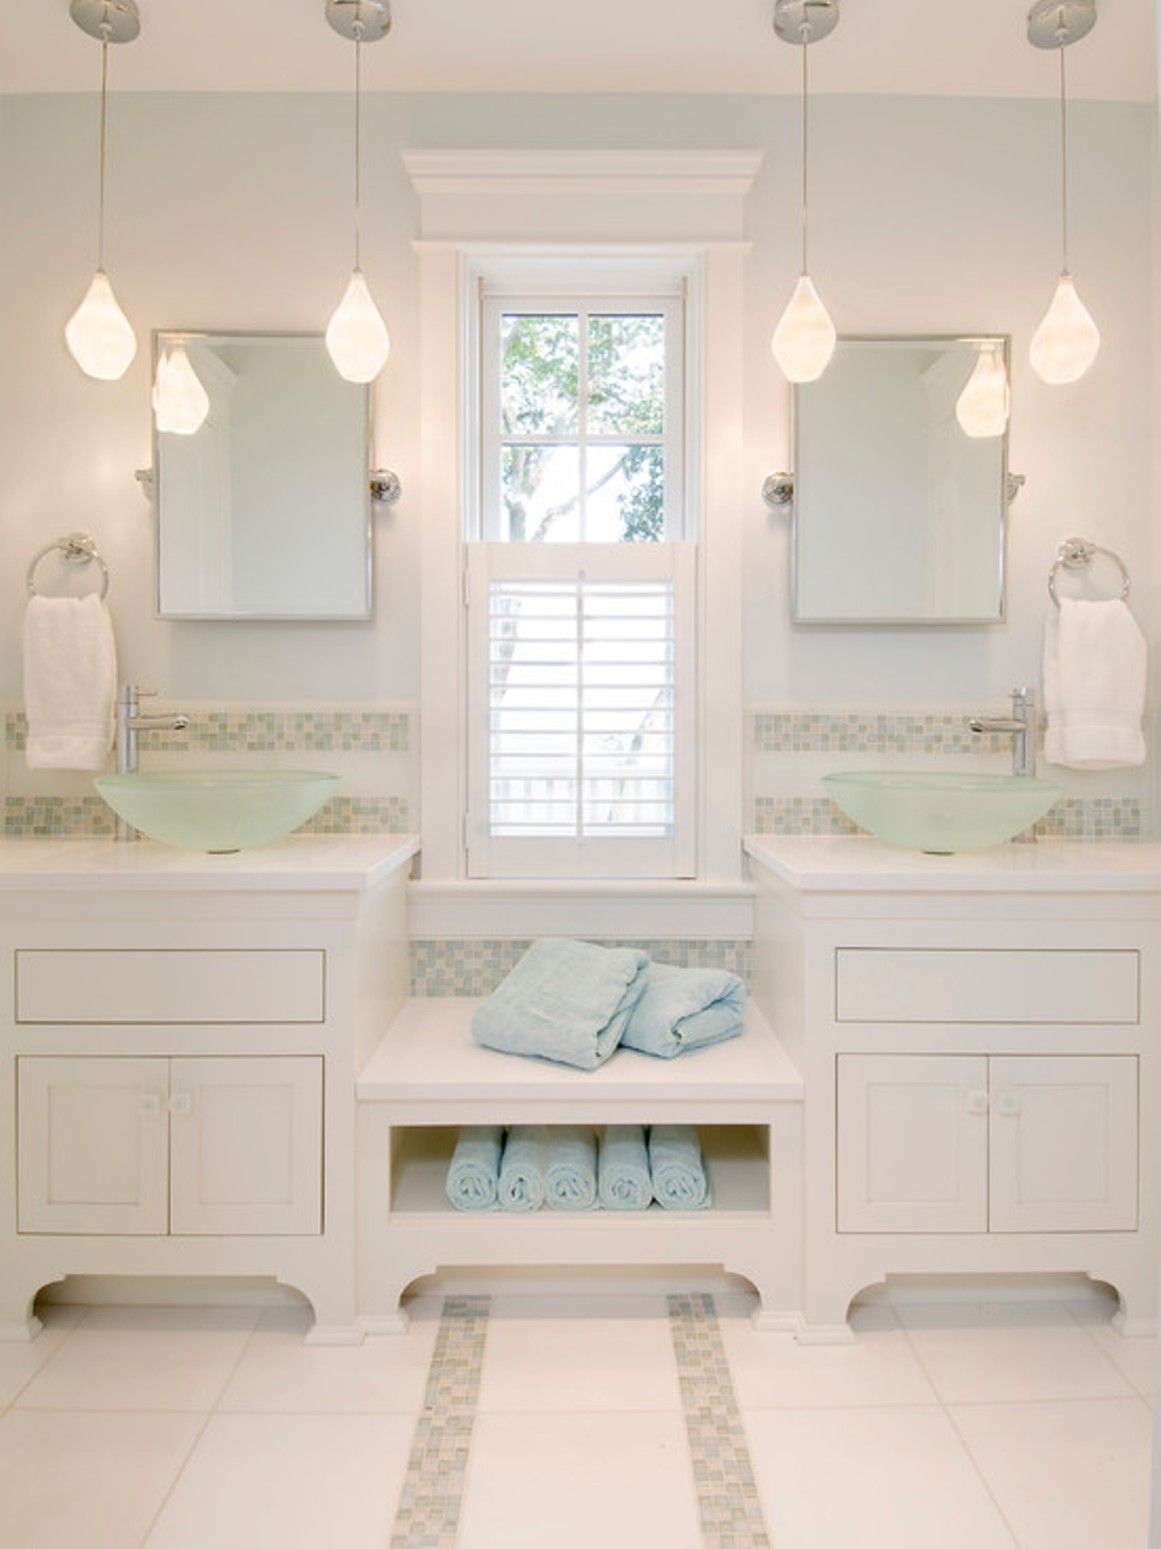 Bathroom Bathroom Vanity Lighting Fixtures Awesome Beach House Bathroom With White Bathroom Vanity Lighting